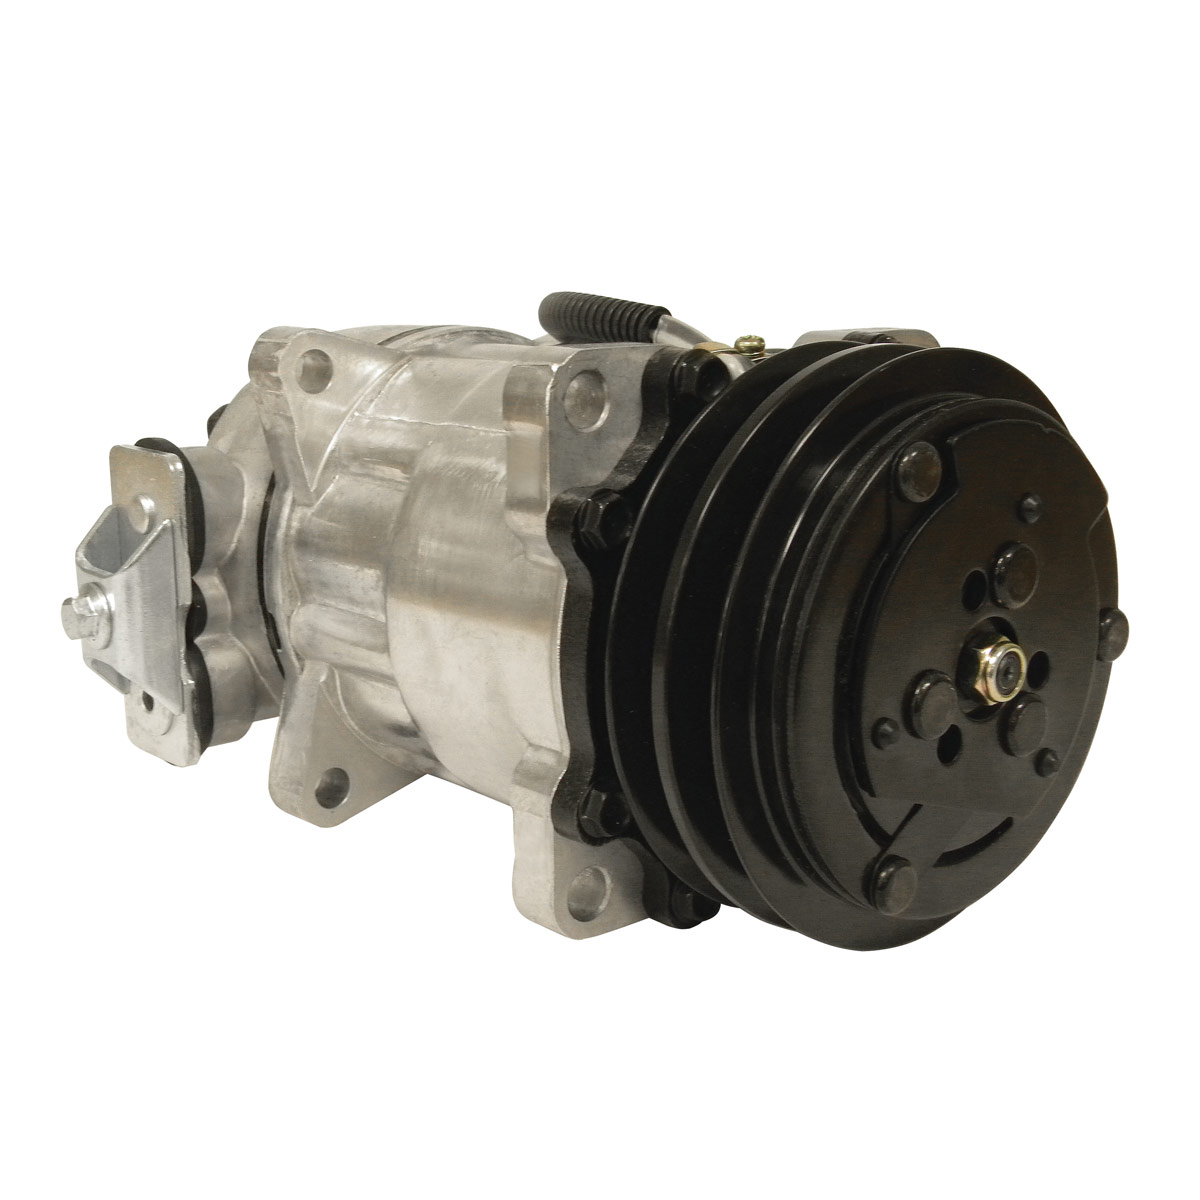 Nissan Pathfinder AC compressor replacement costs & repairs